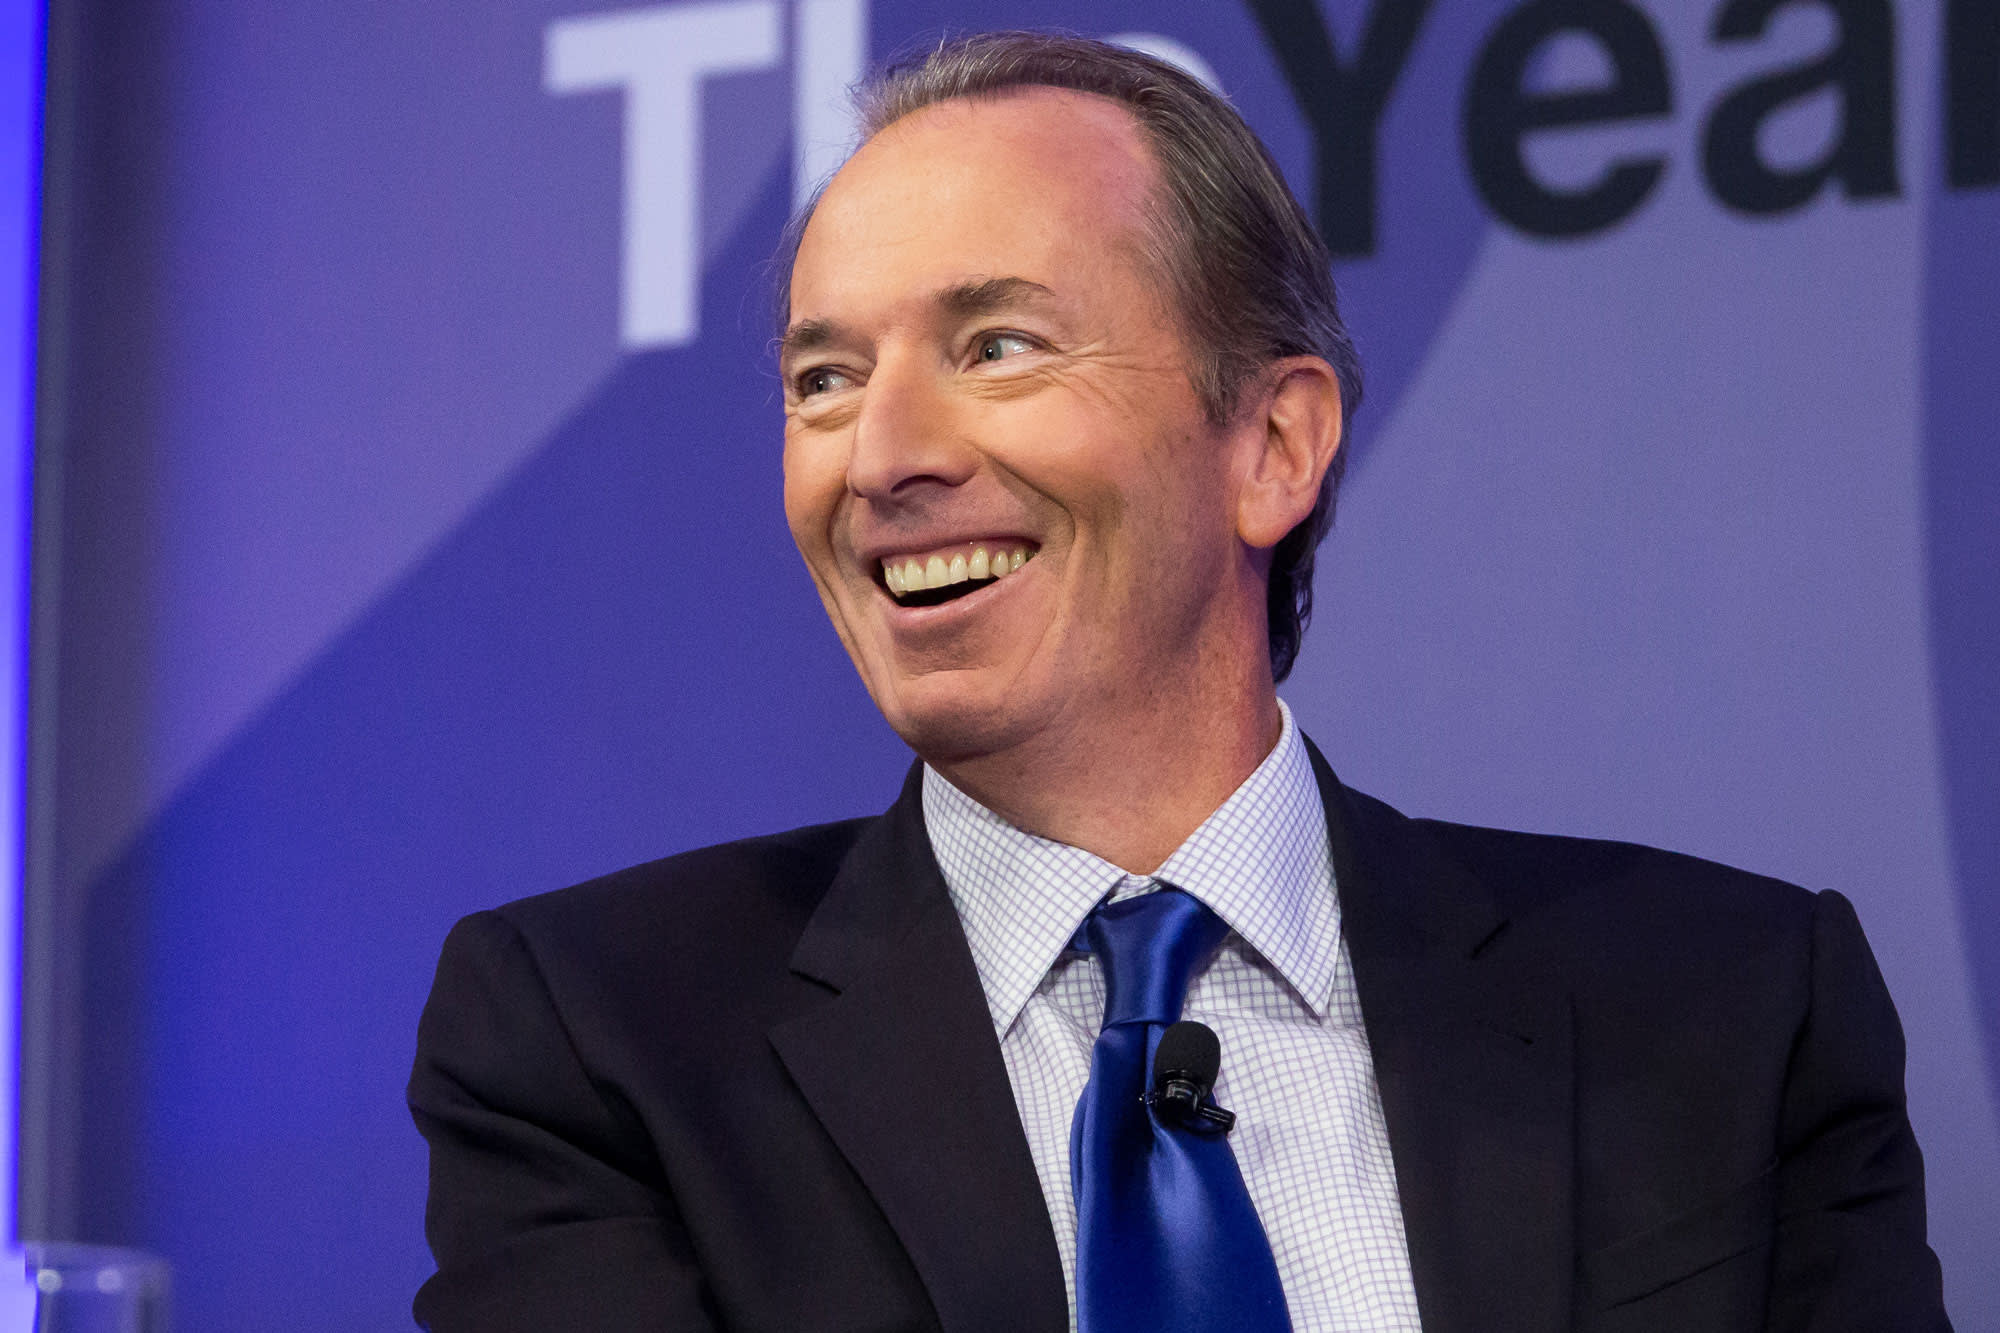 Morgan Stanley CEO James Gorman says bank should boost dividend, resume buybacks in 2021